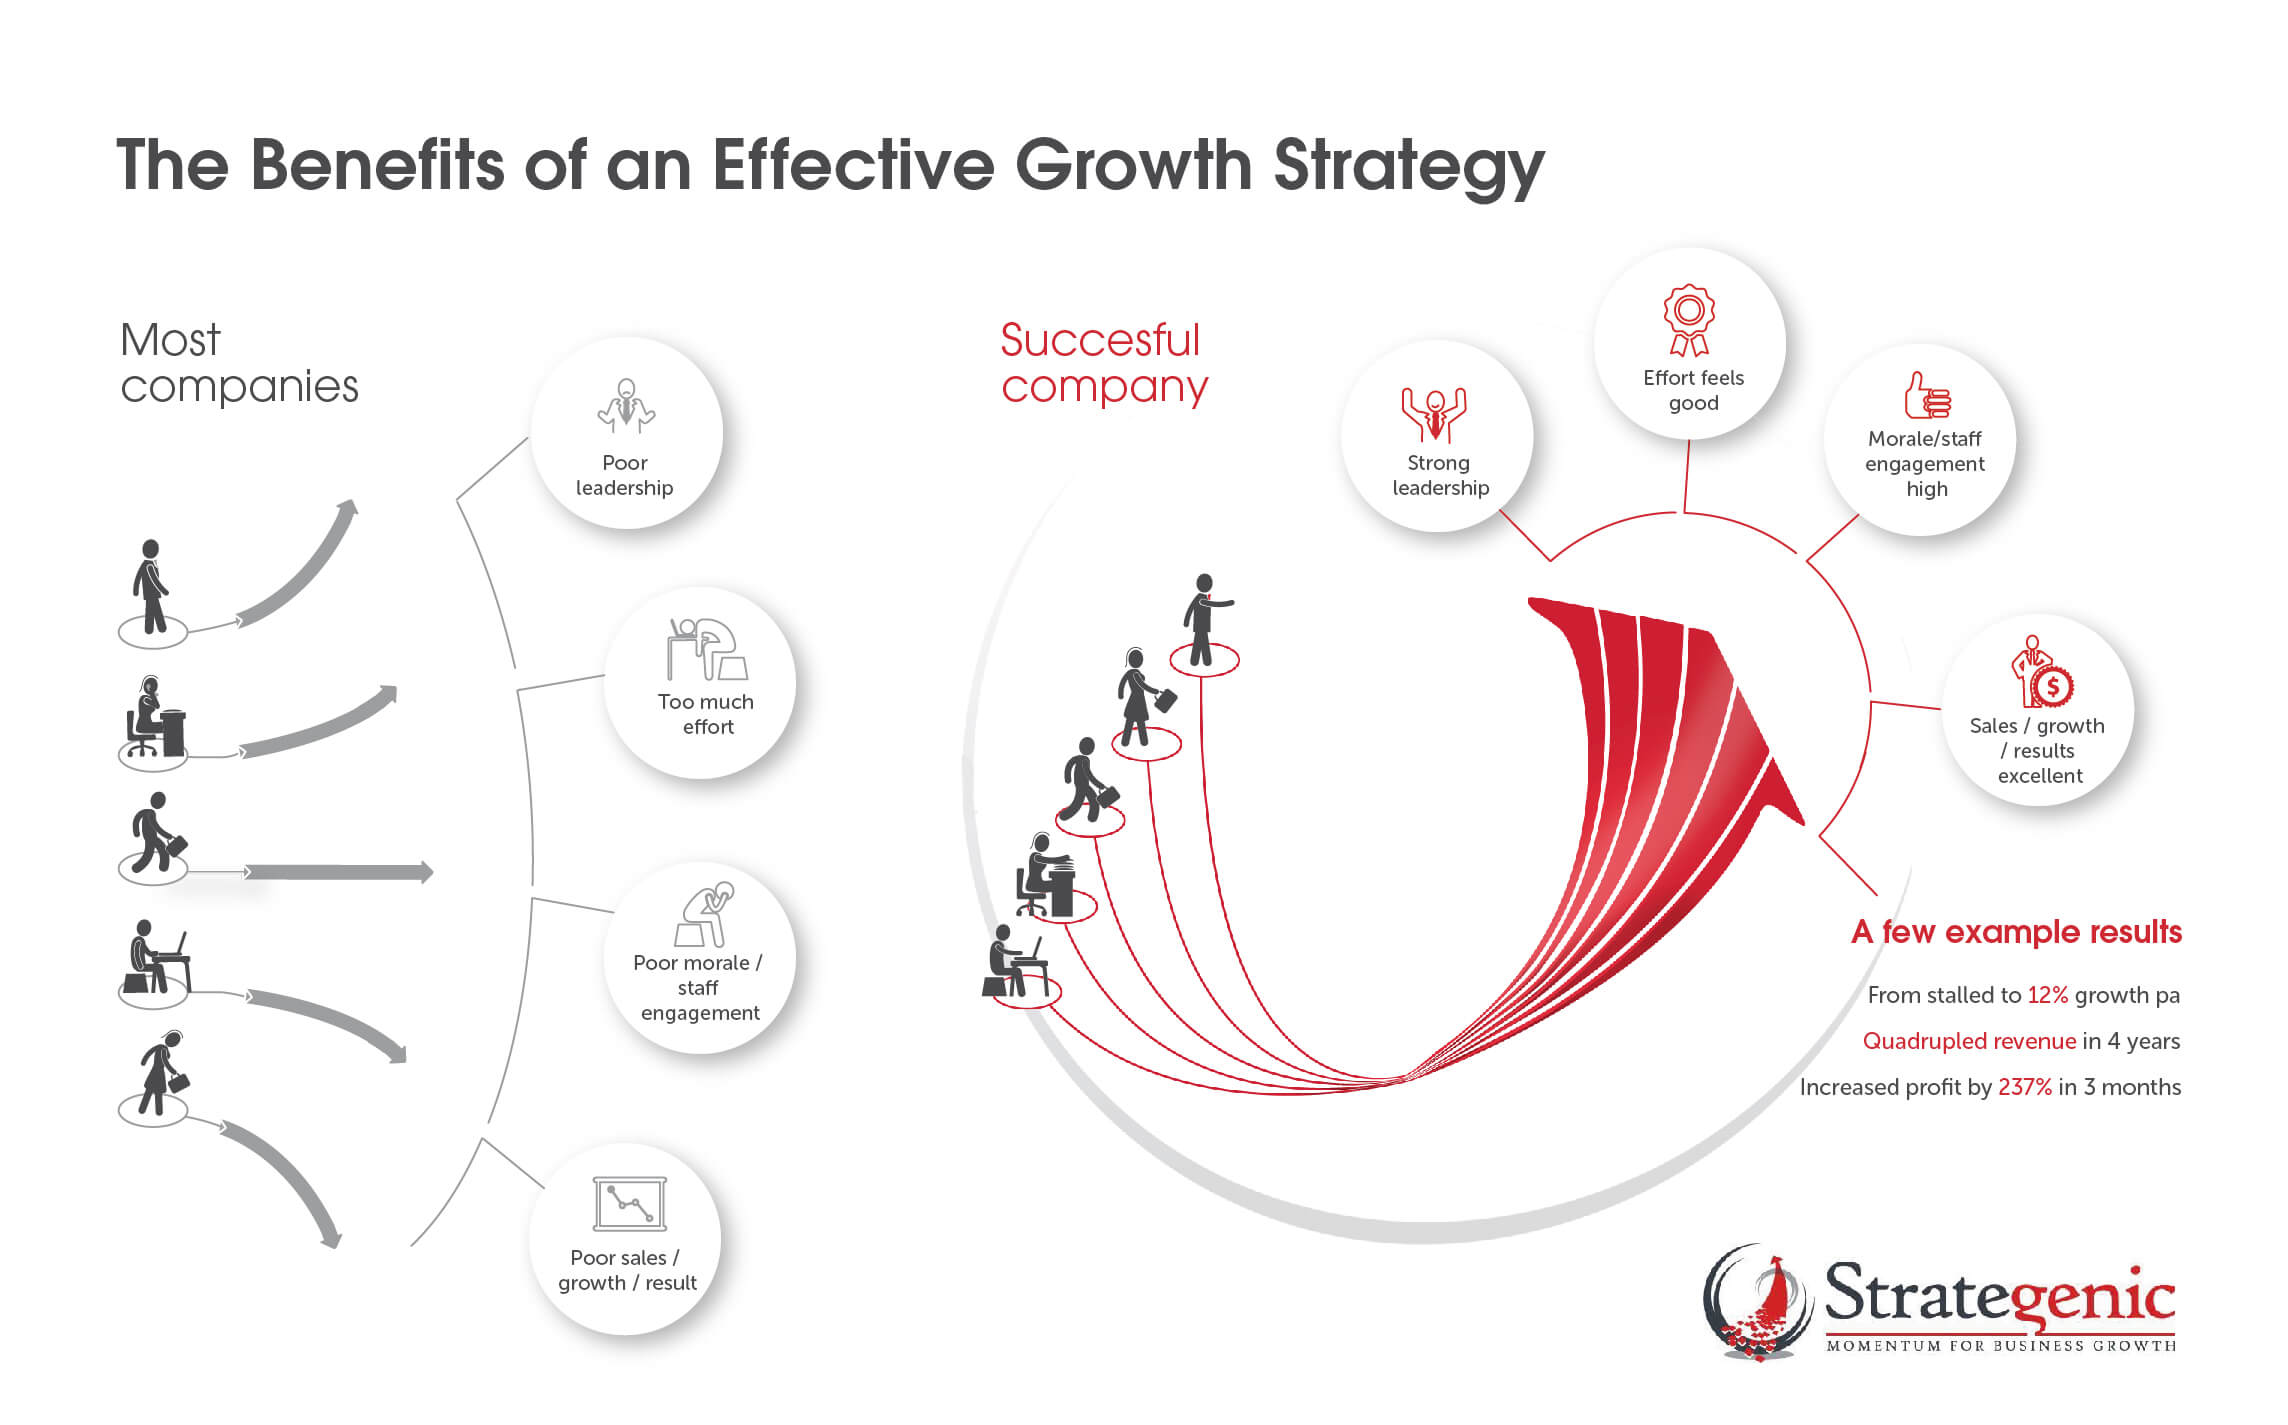 The benefits of an effective growth strategy.